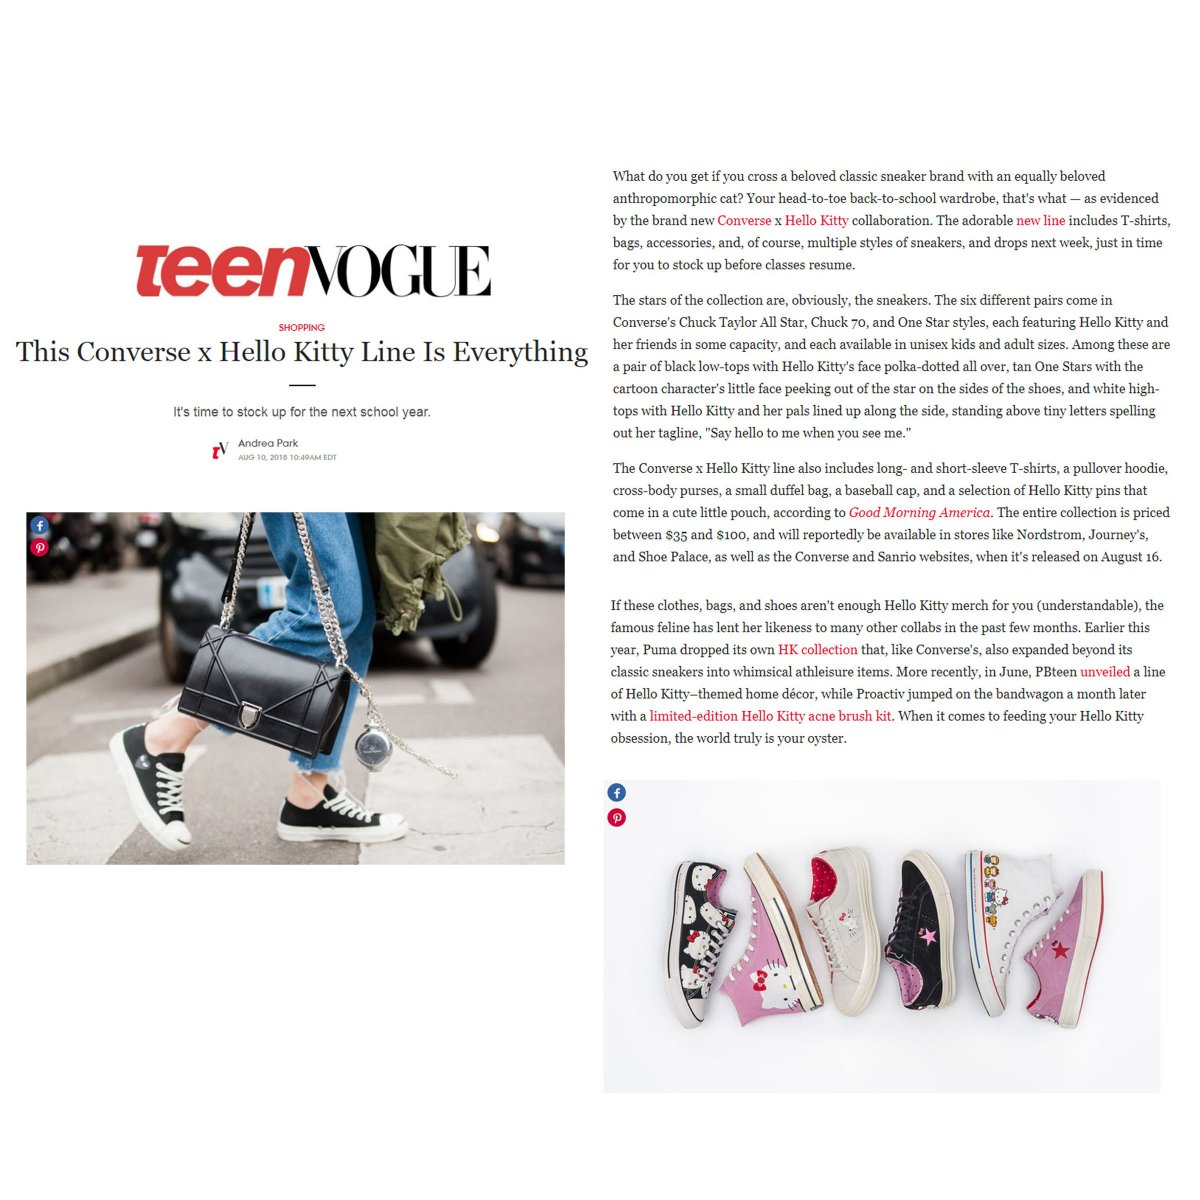 be4940e5b84c Check out some of the awesome coverage for  hellokitty x  Converse! The  collection is featured on a variety of outlets from  TeenVogue to ...